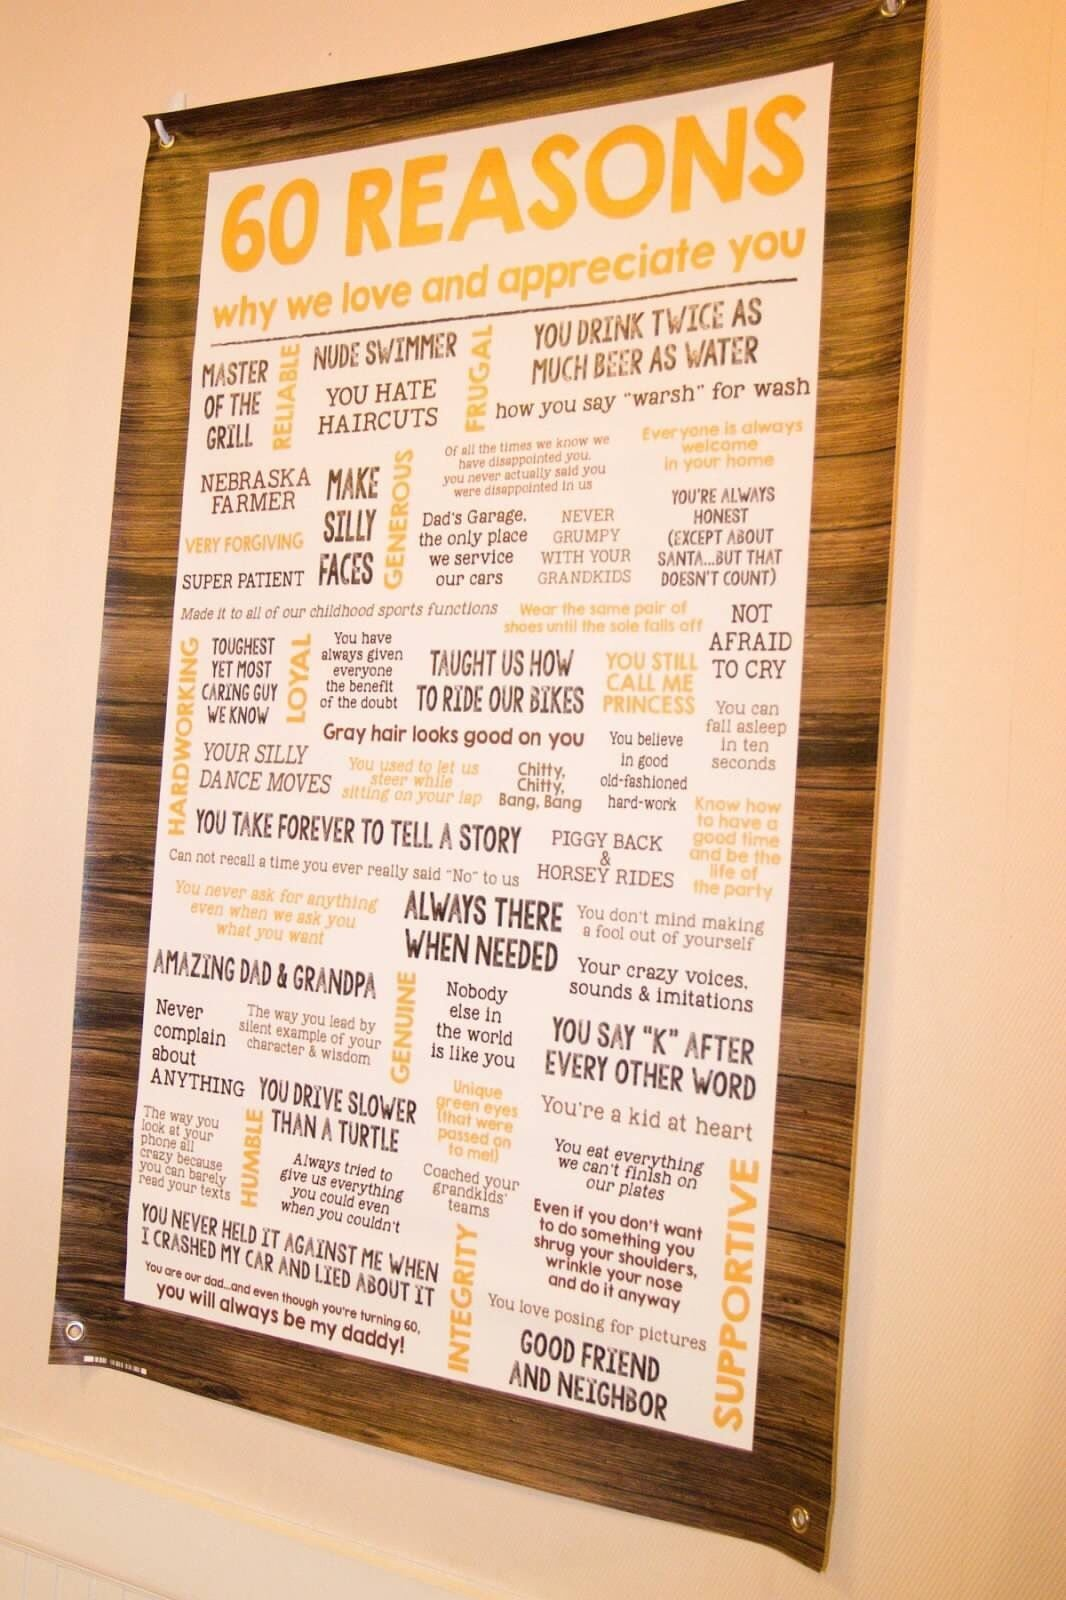 10 Best 60Th Birthday Ideas For Men rustic 60th birthday party 60 reasons why we love you banner posh 3 2020